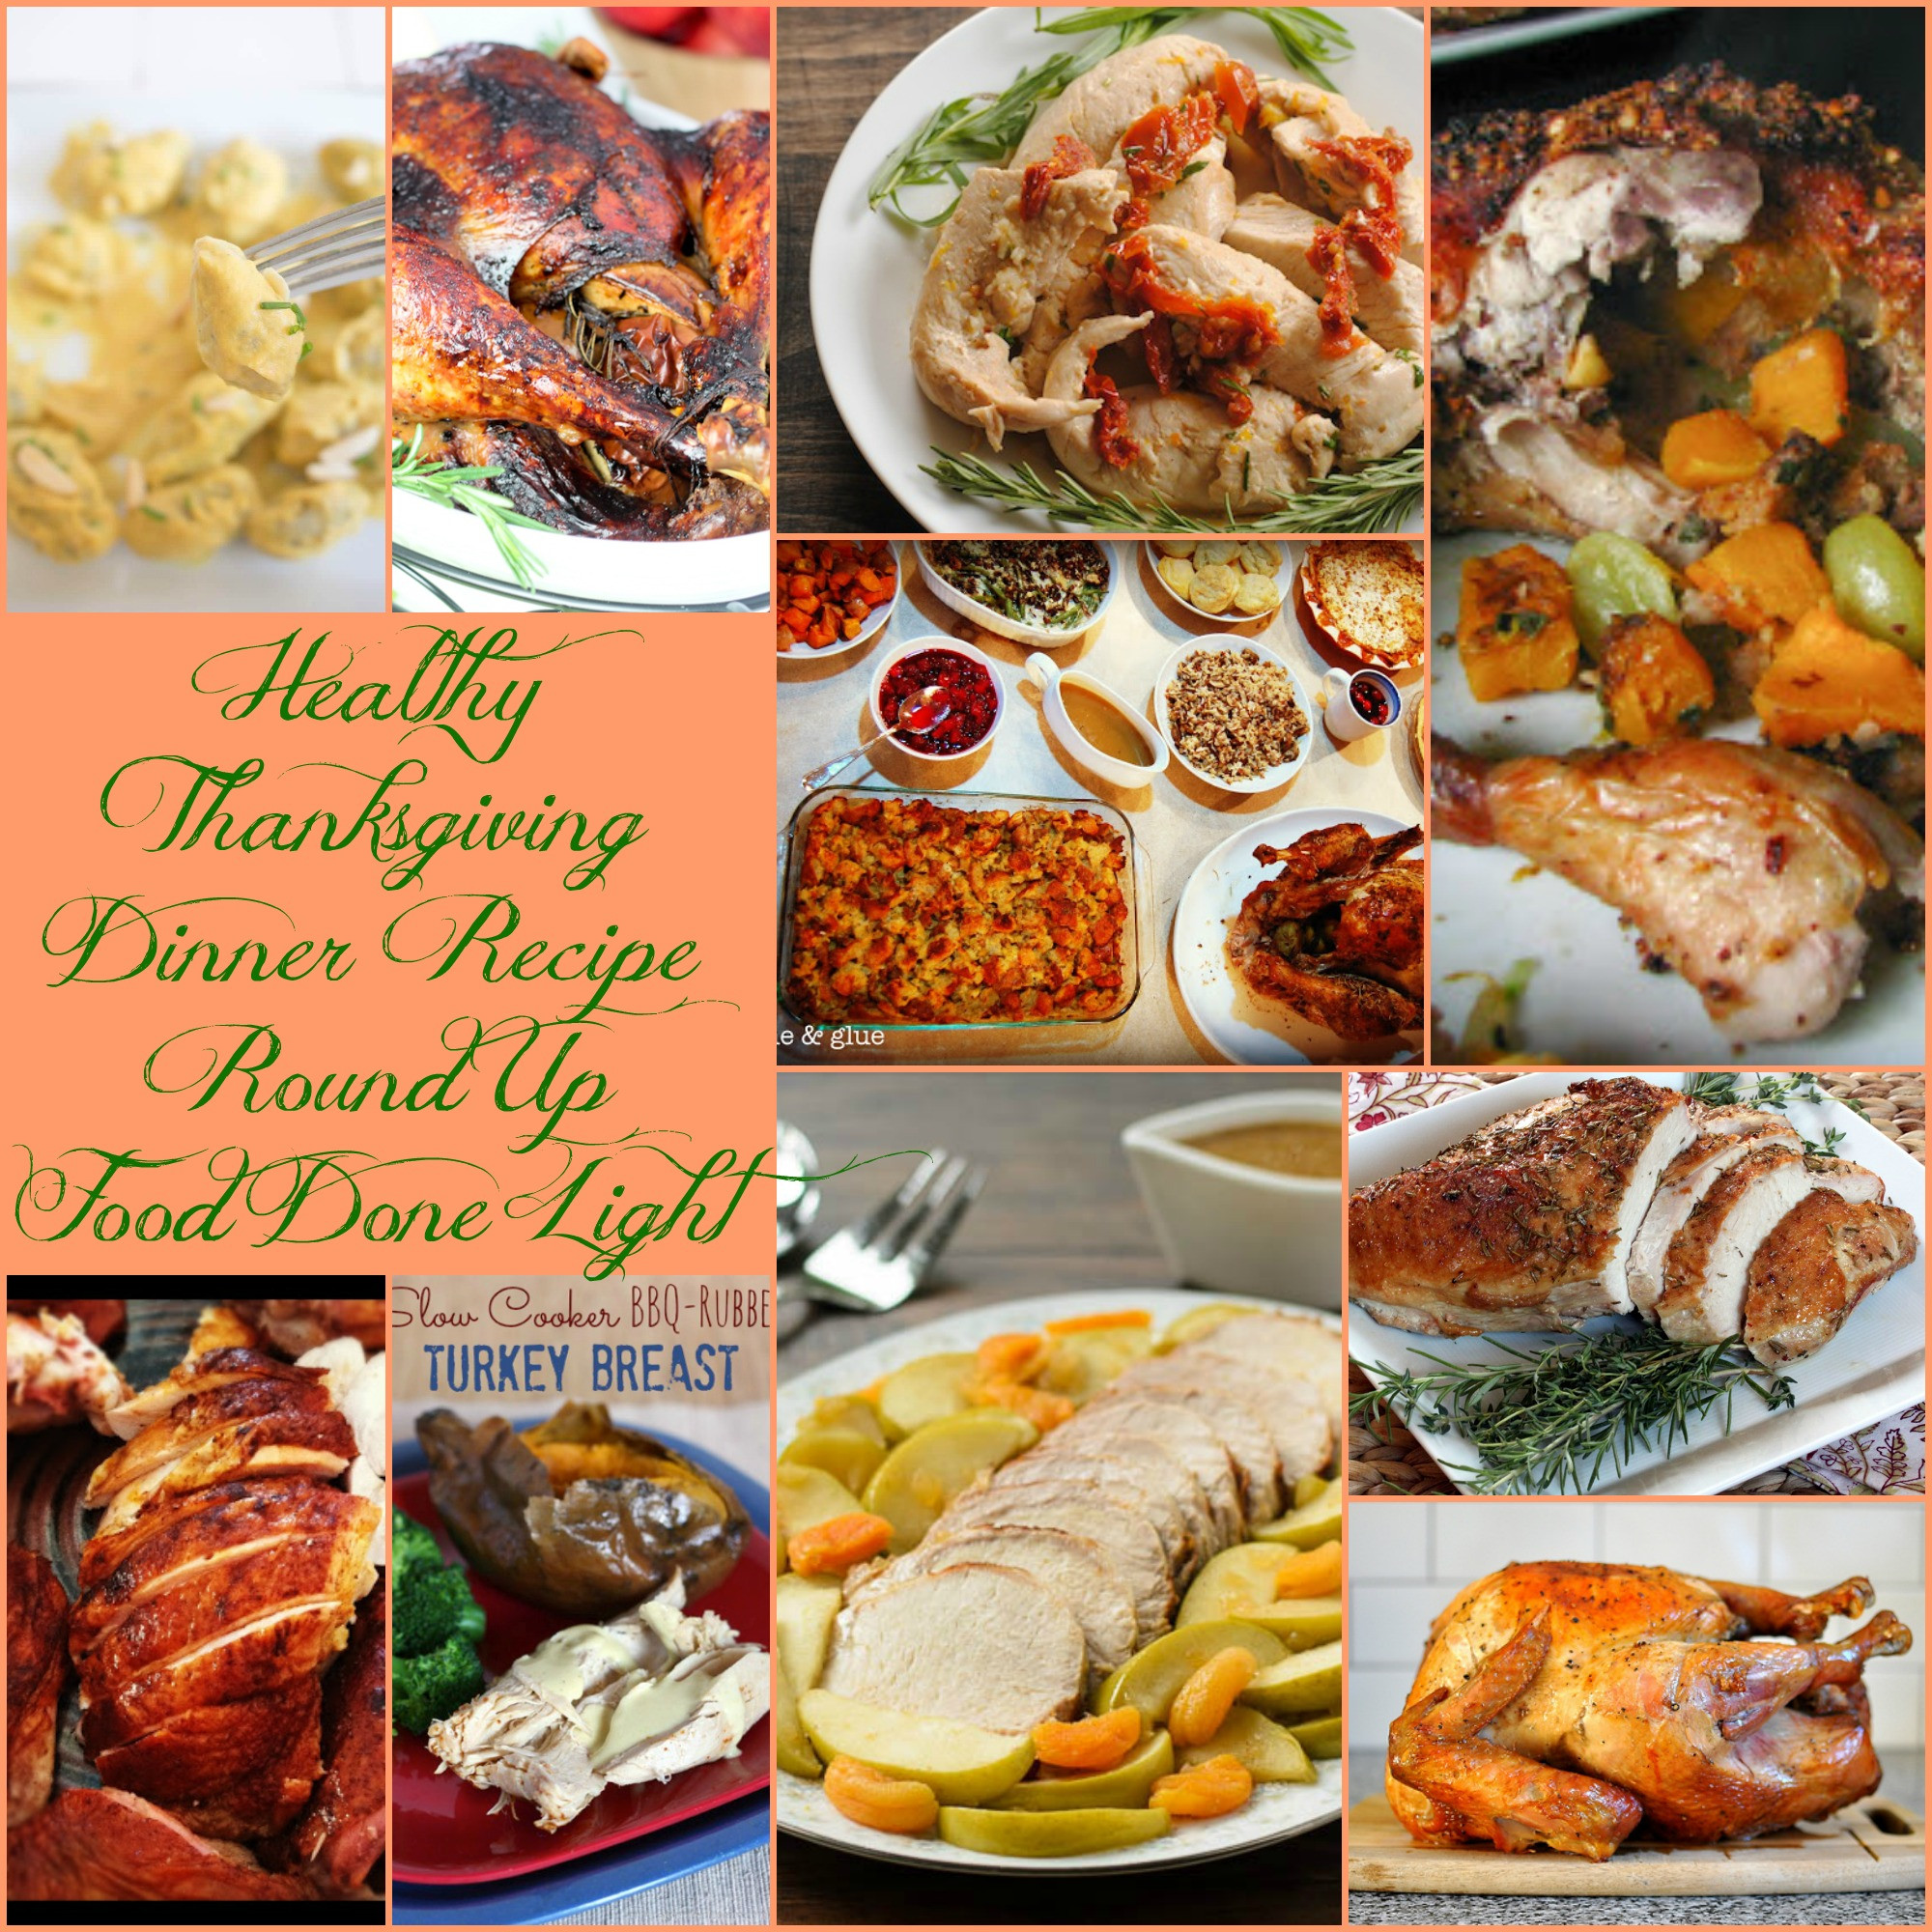 Turkey Recipes For Thanksgiving Dinner  Healthy Thanksgiving Turkey Recipe Round Up Food Done Light